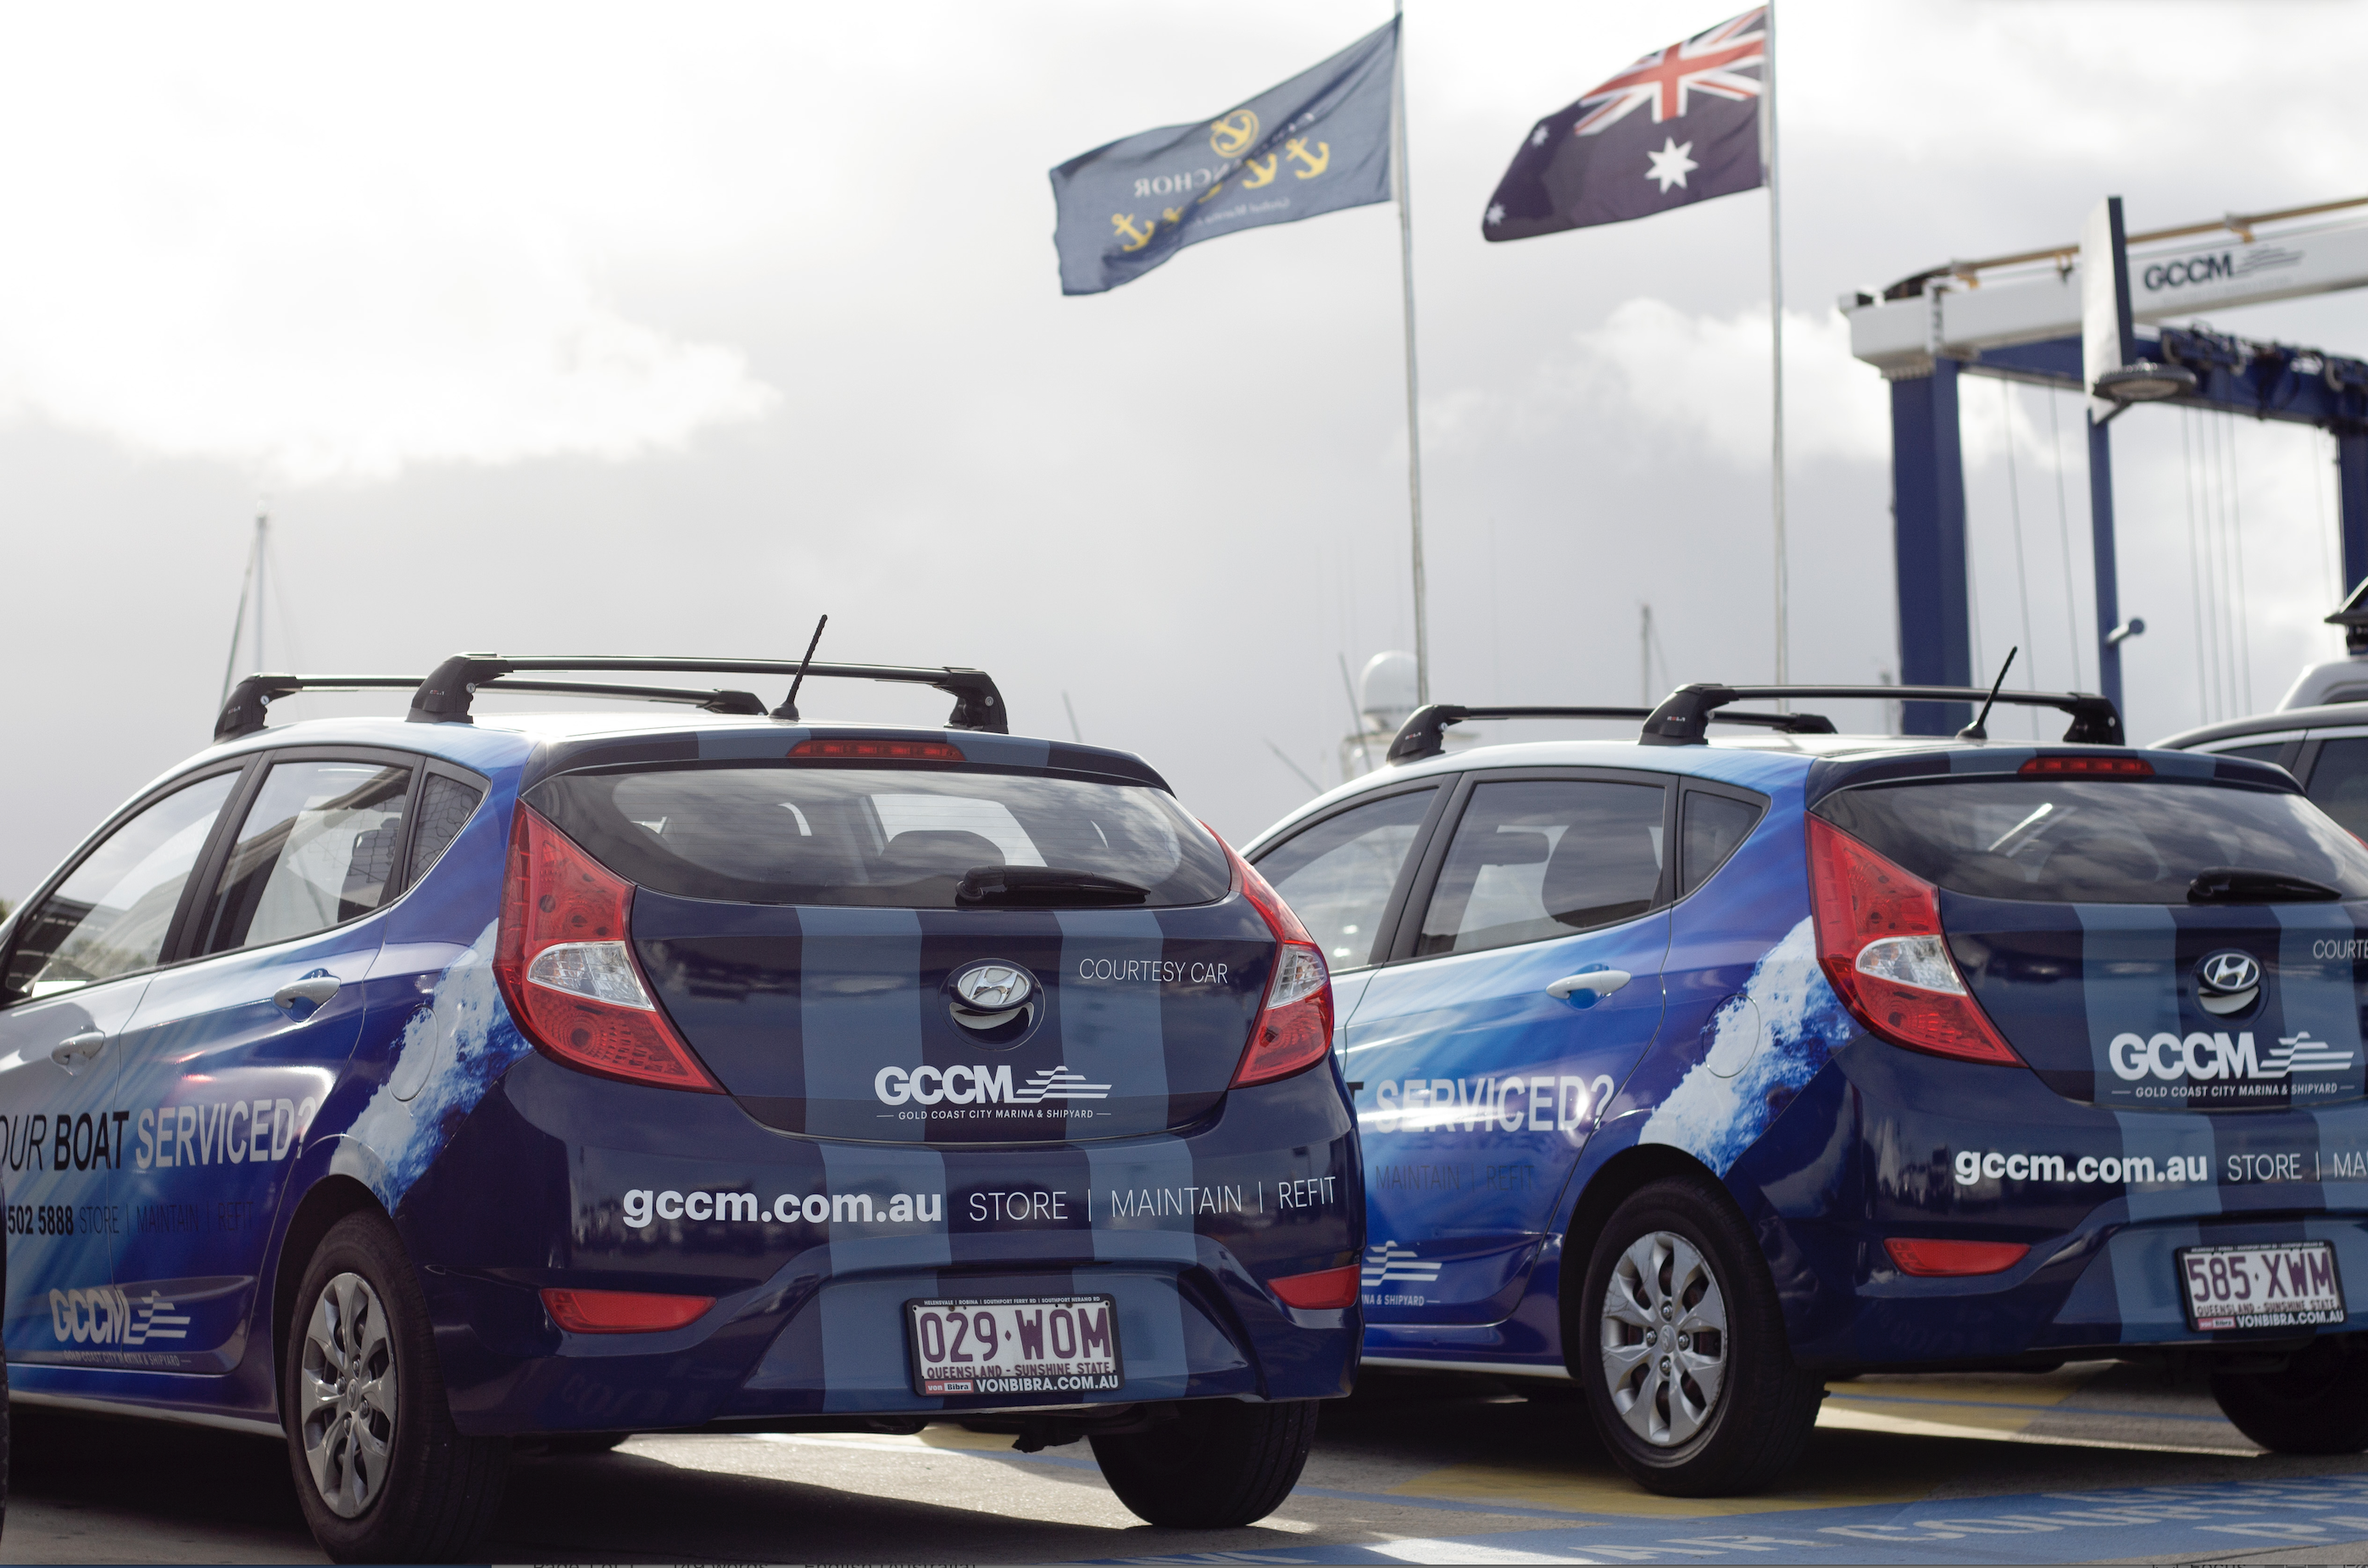 GCCM marina and shipyard guests have access to complimentary courtesy cars